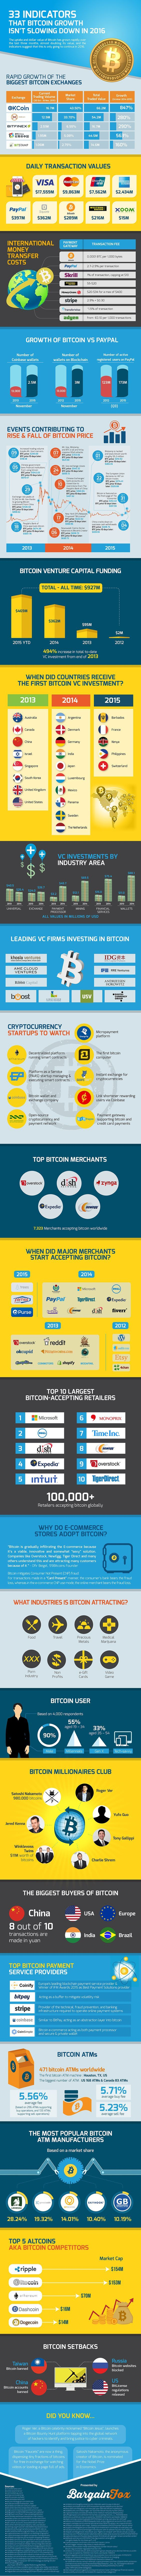 Why Bitcoin Will Continue To Grow In 2016 Infographic Bitcoin